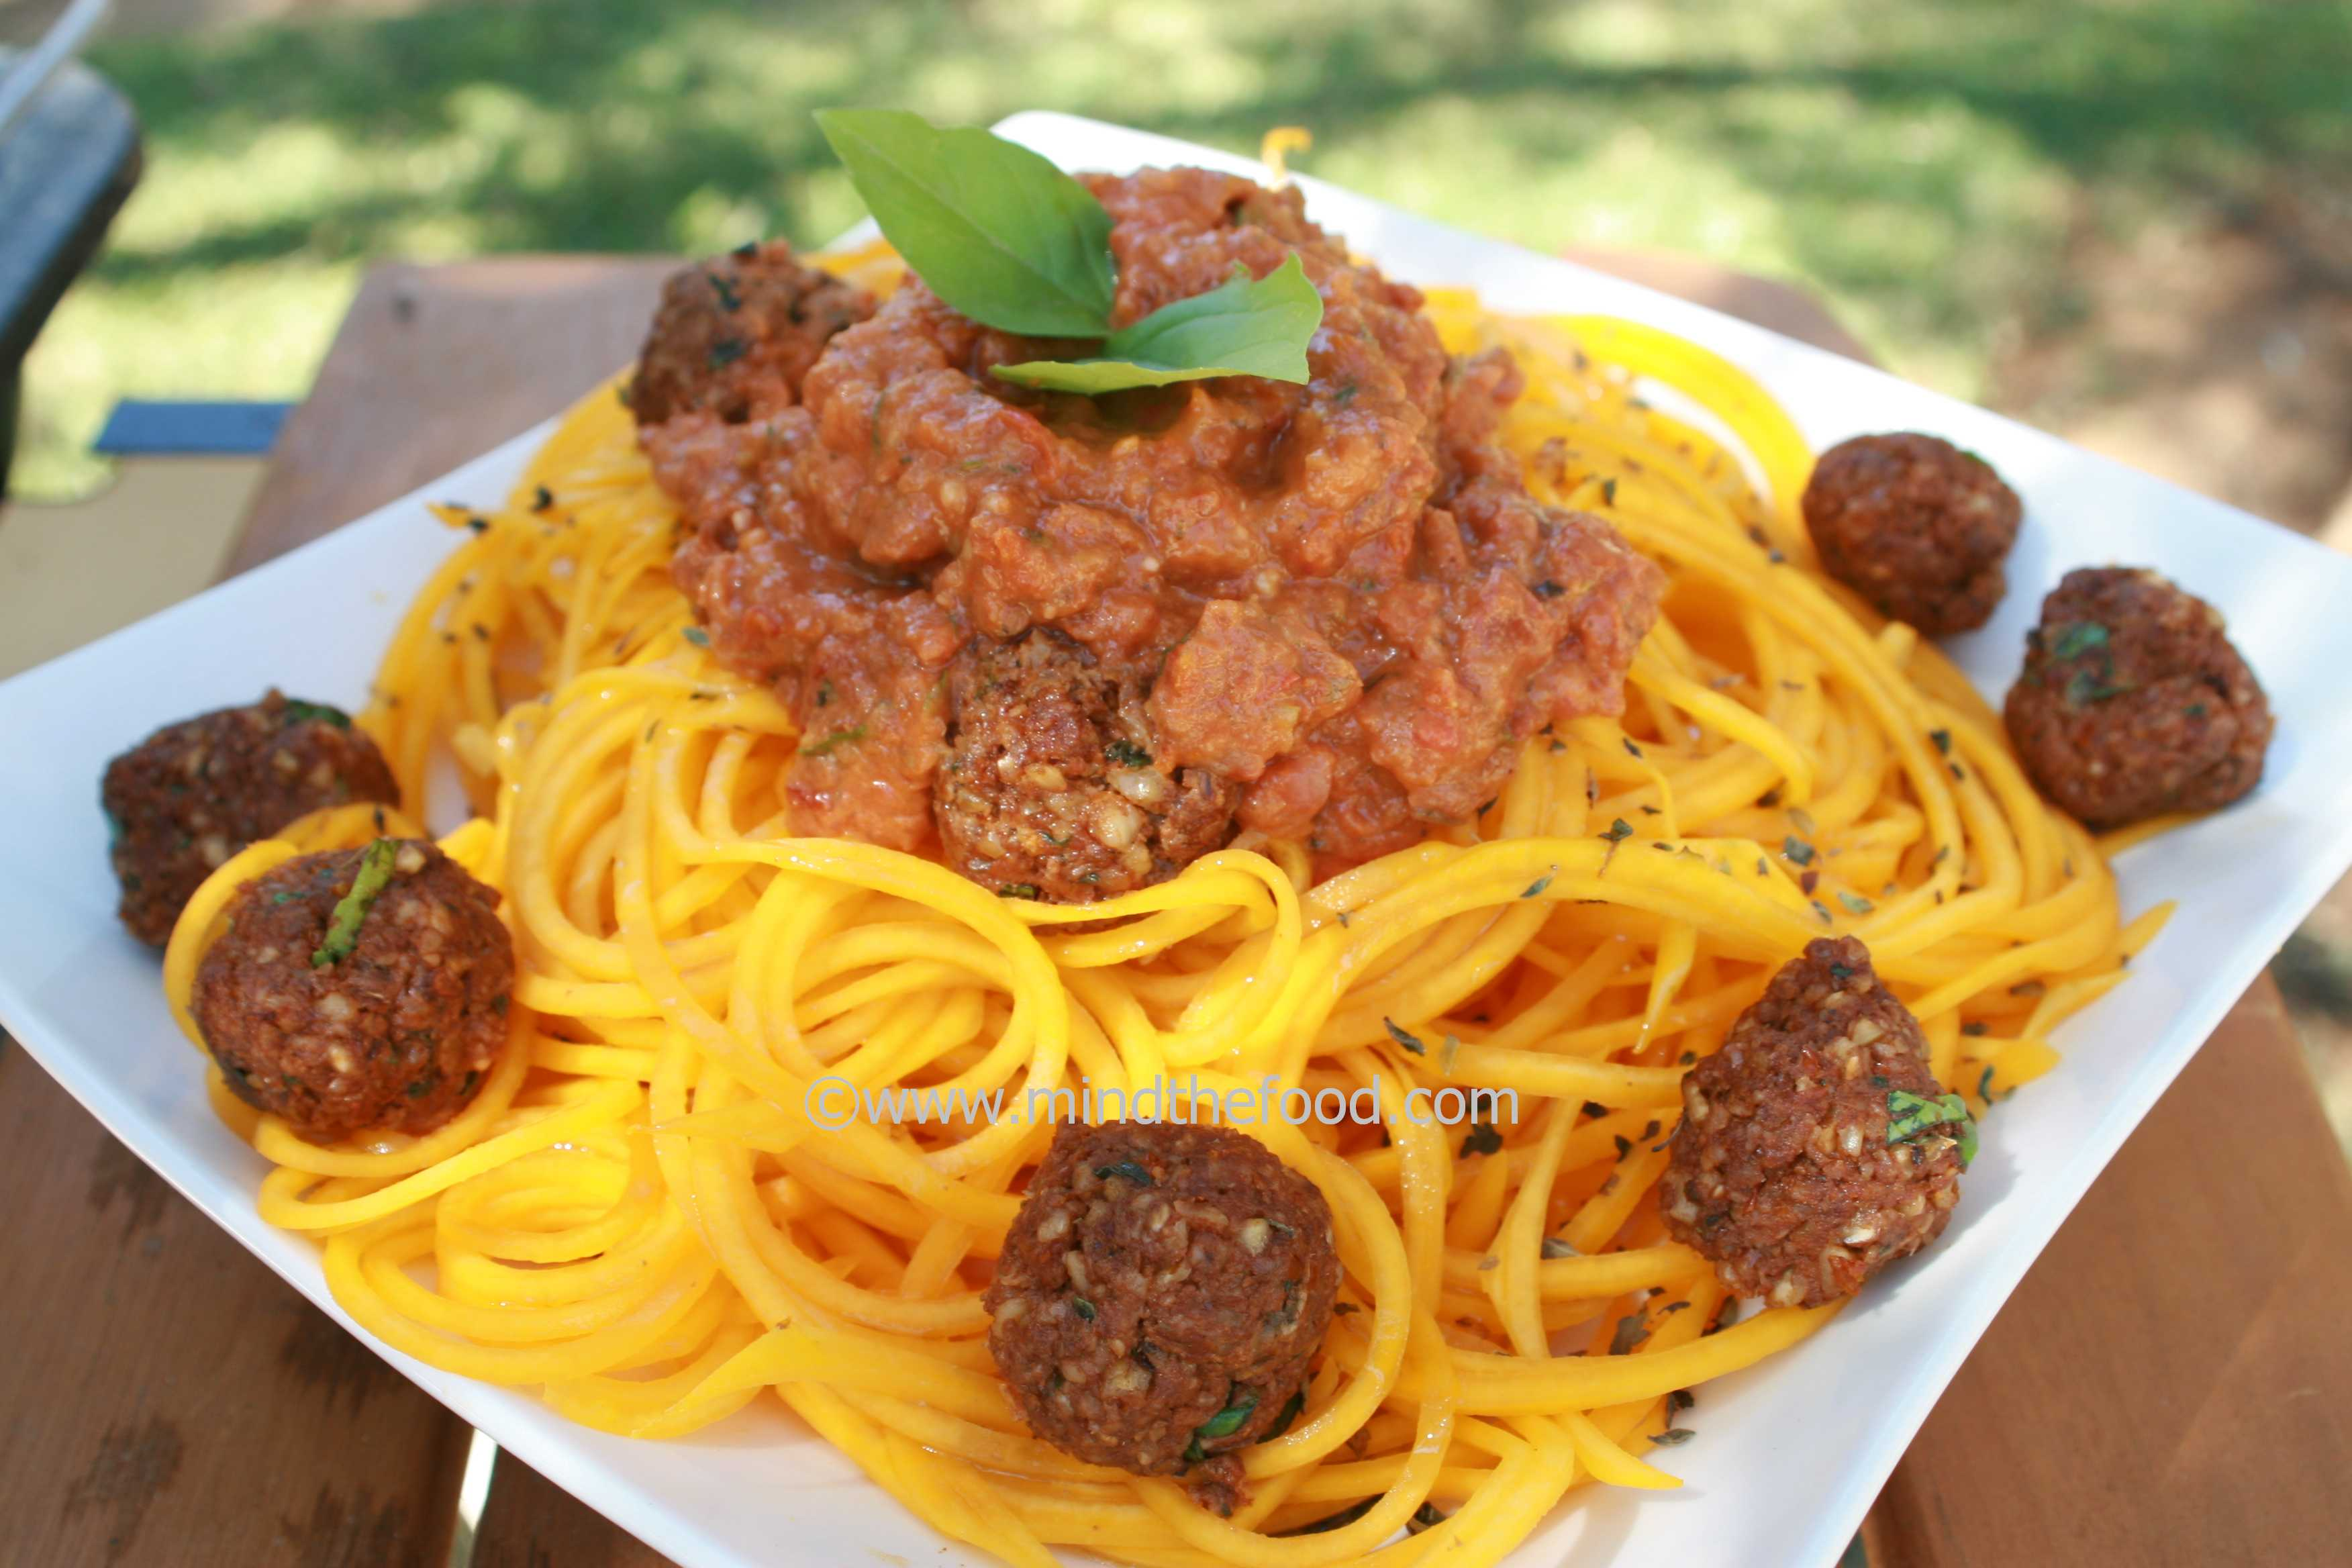 Raw Spaghetti Bolognese with Meatballs | mind_the_food